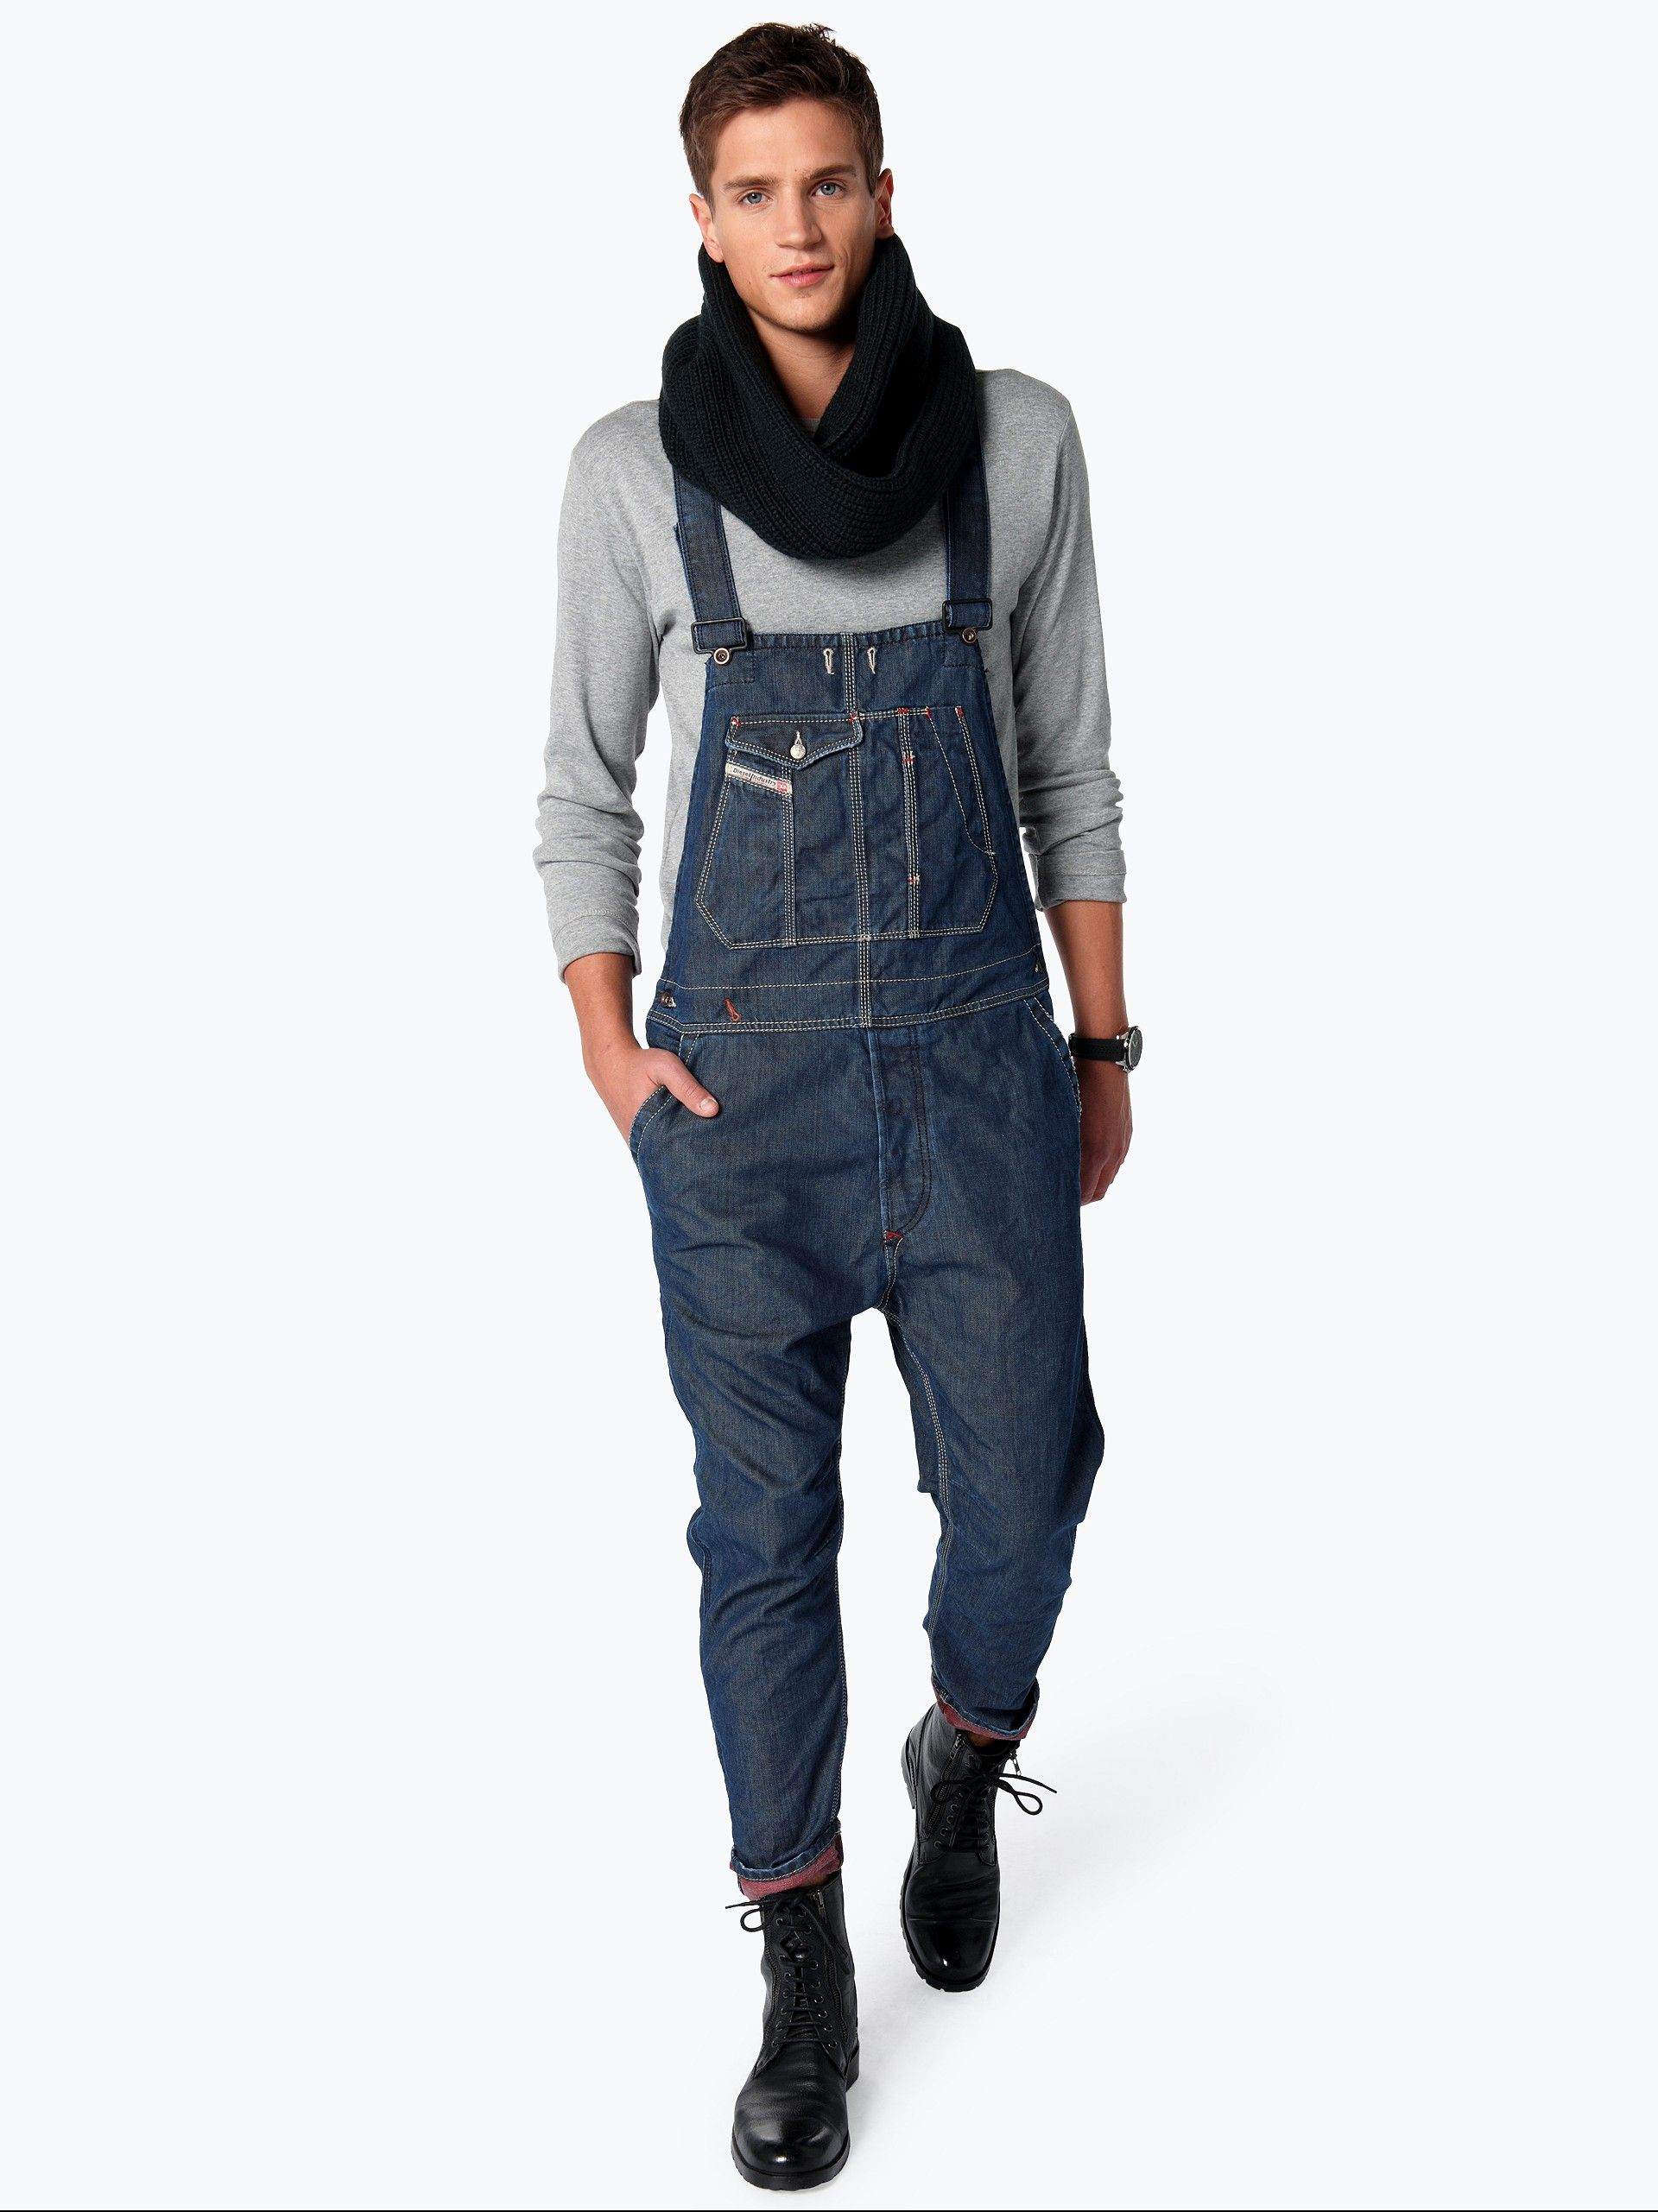 2e9f9d9aacc Gys  Overalls - More models in Overalls